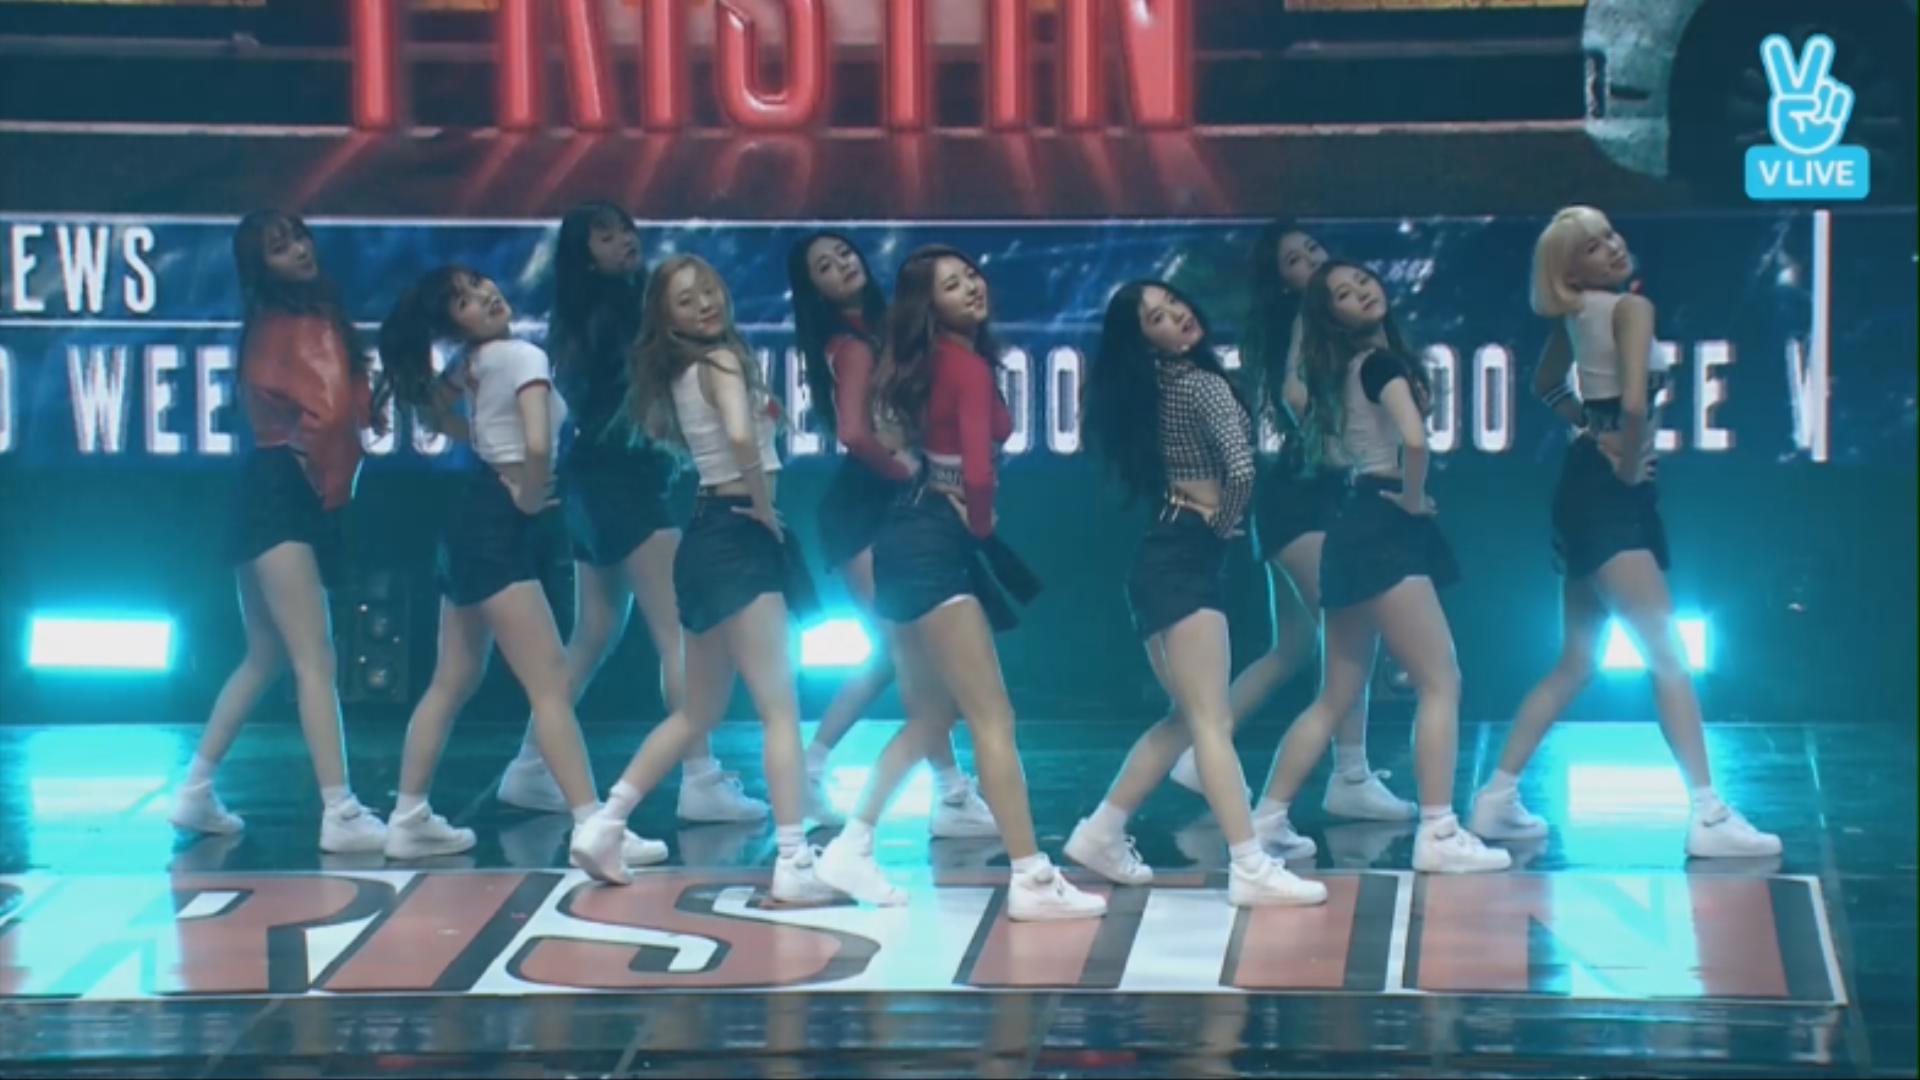 [REPLAY] PRISTIN DEBUT SHOWCASE 'HI! PRISTIN'